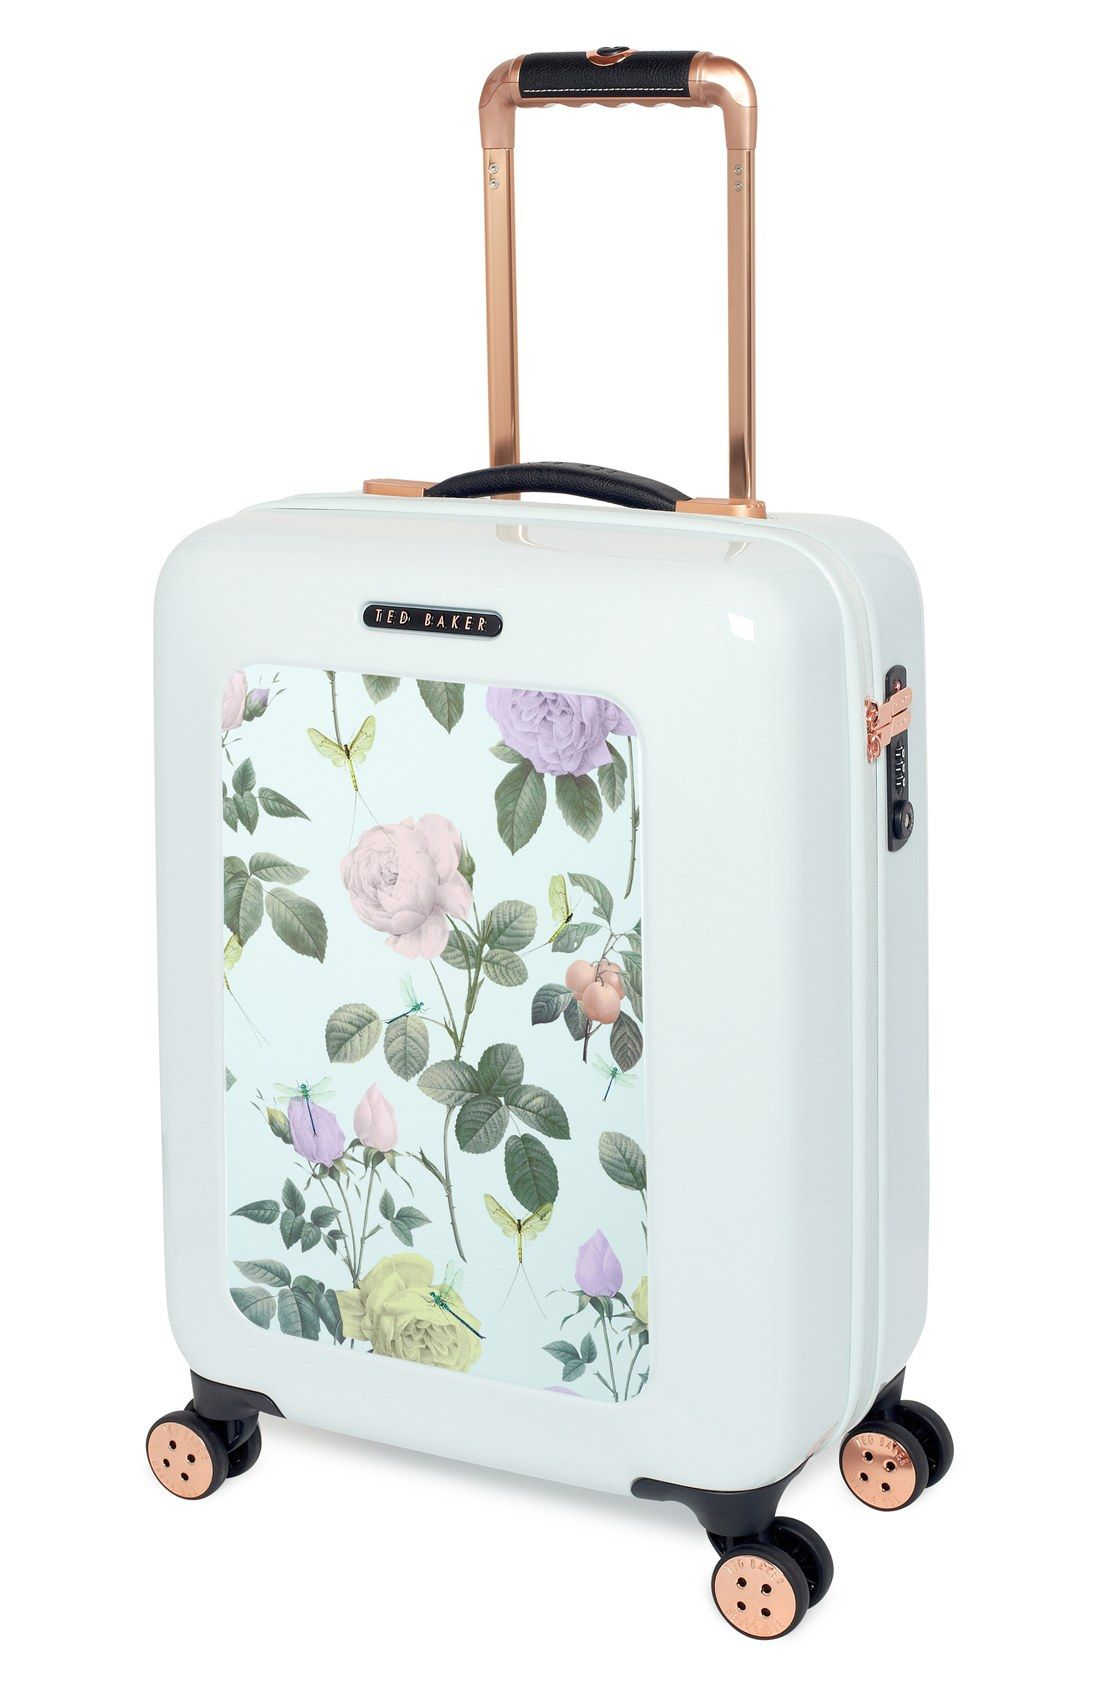 7633383d3468 Traveling in style with this cute mint and rose gold suitcase featuring  pretty pastel blooms.